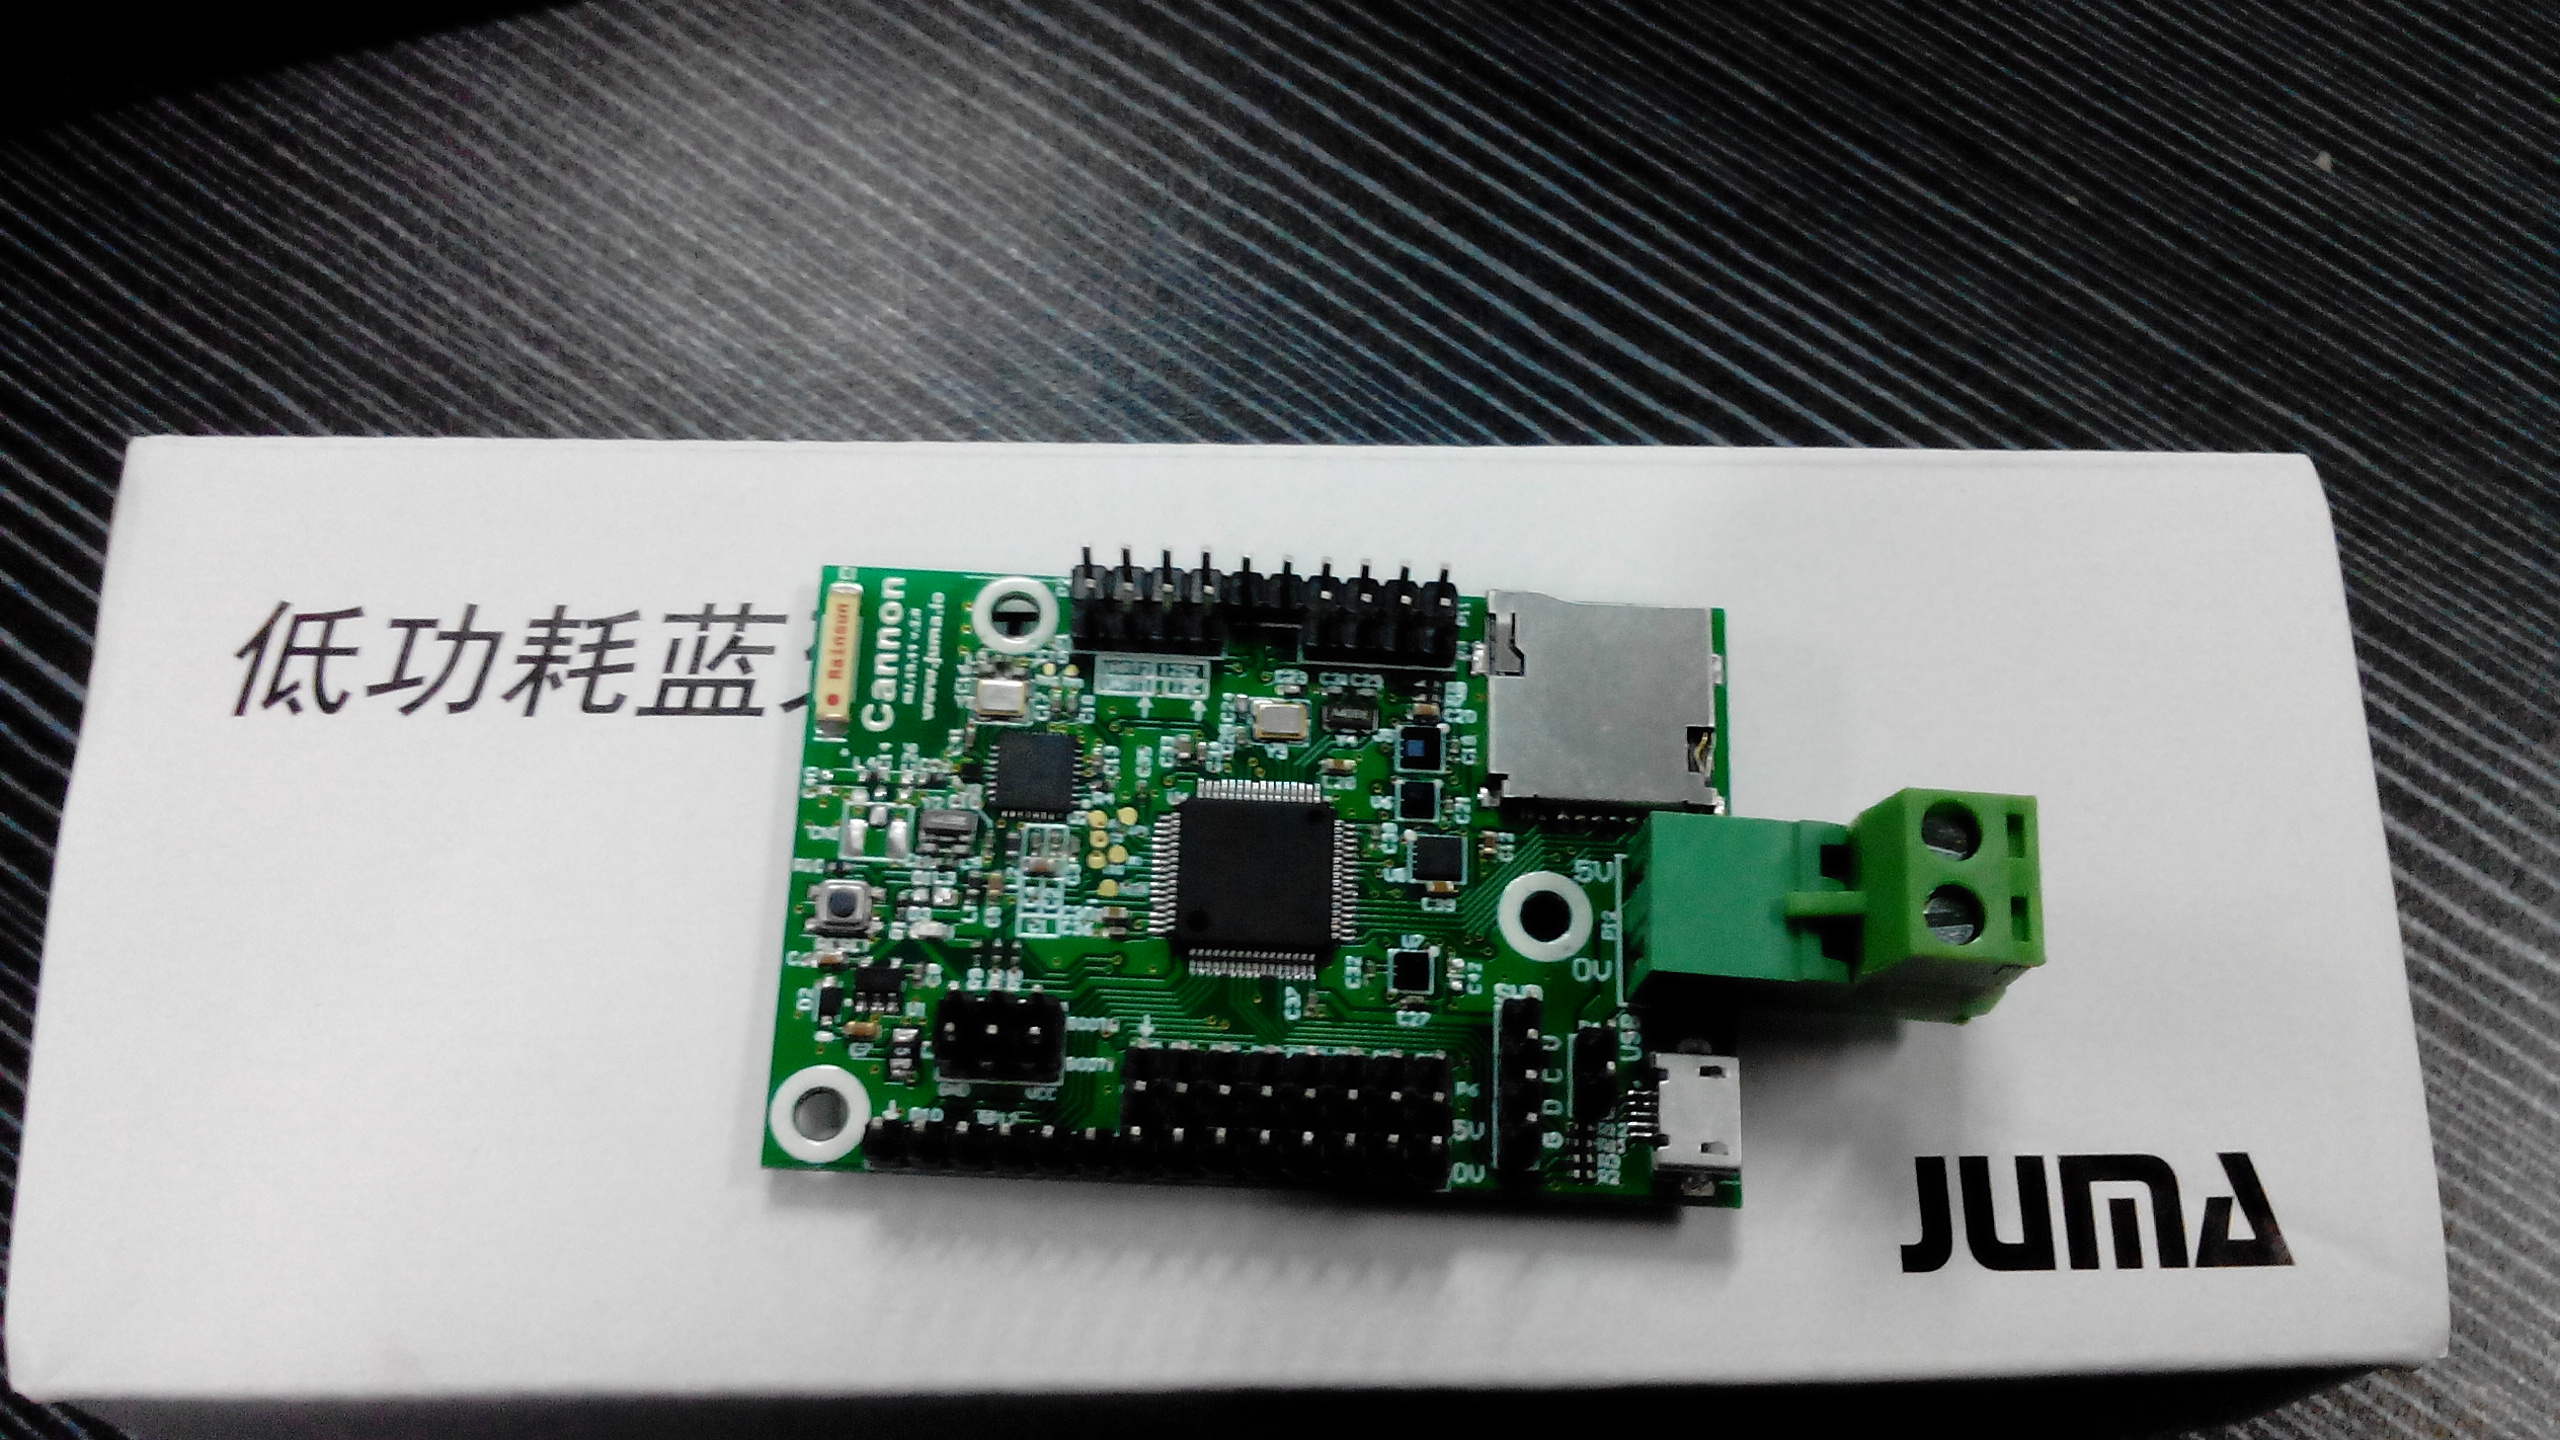 Low Power Bluetooth Development Board 24ghz Stm32f401 Ble40 Barometer Signal Conditioner In Air Parts From Home Appliances On Alibaba Group